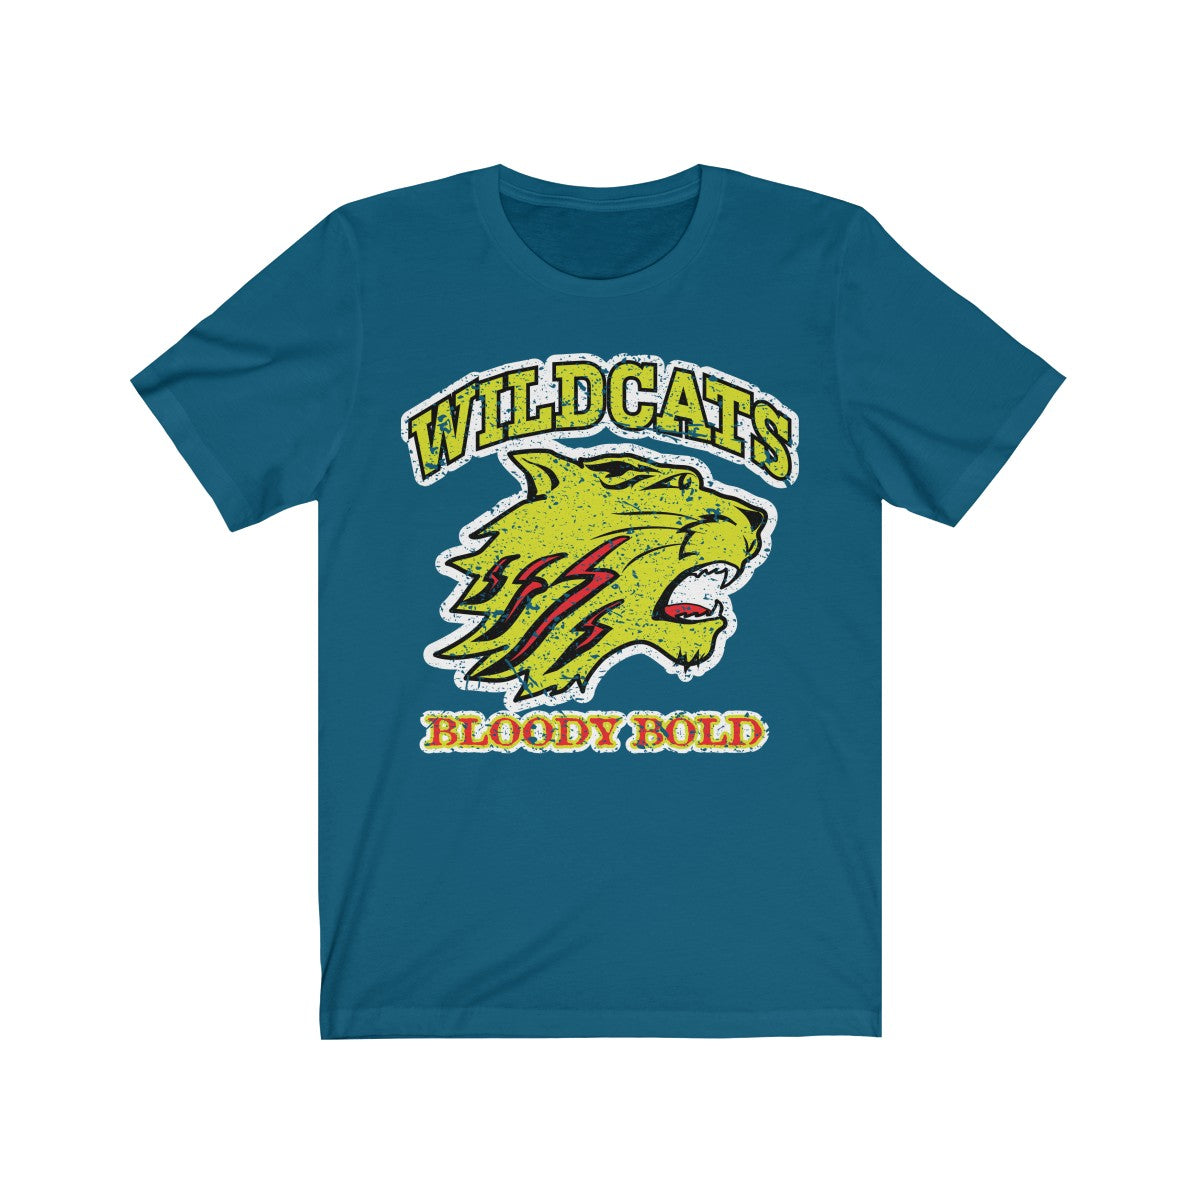 Dunwoody Wildcats, Bloody Bold - T-Shirt